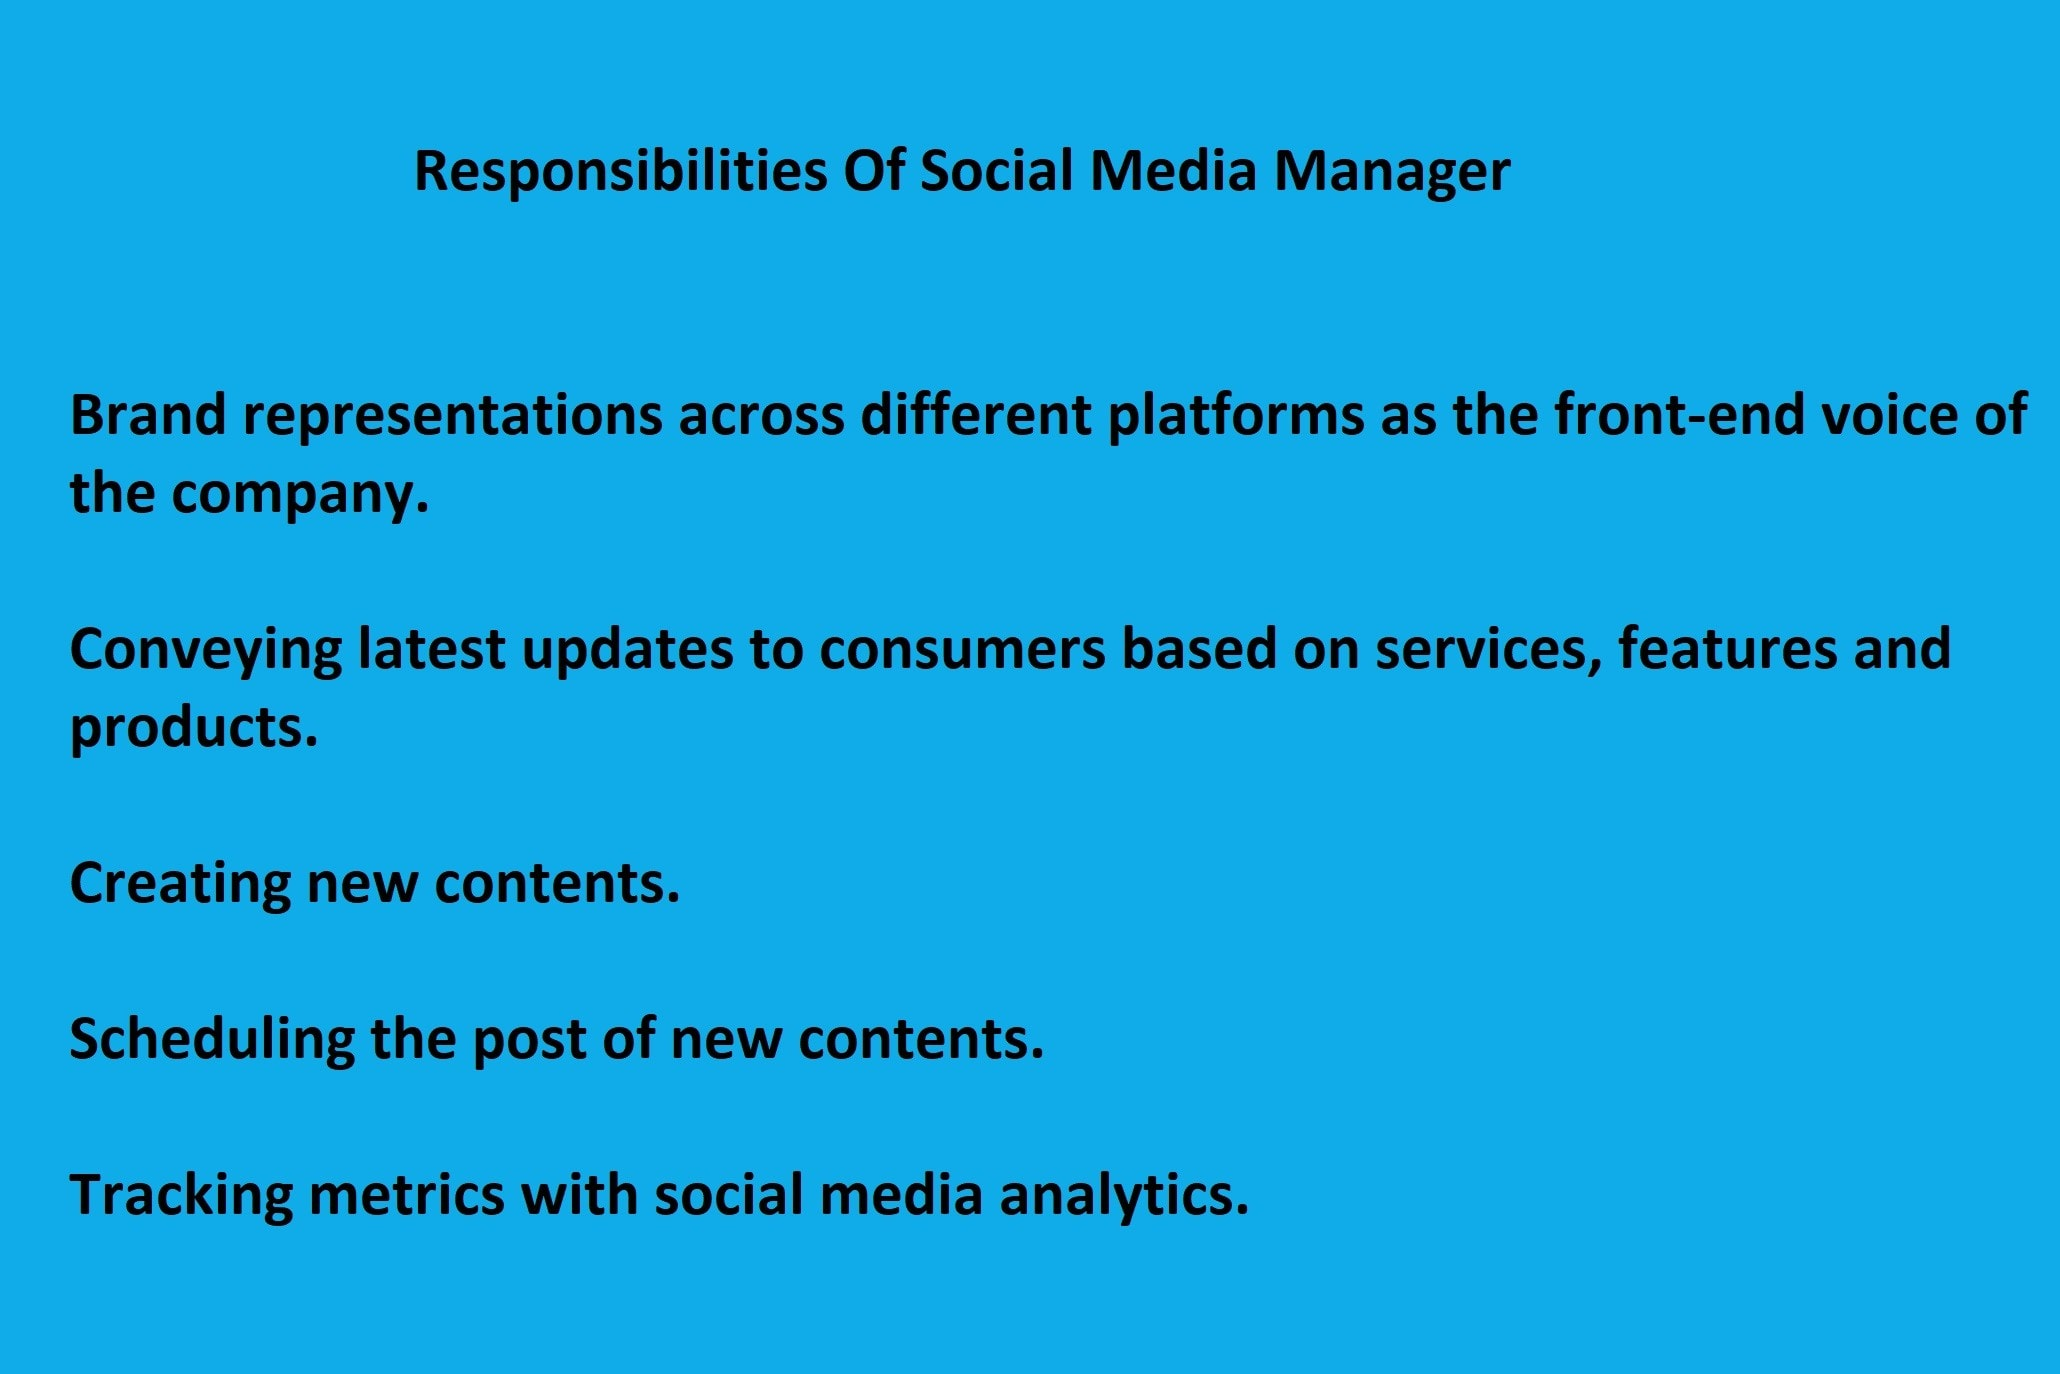 Responsibilities Of Social Media Manager